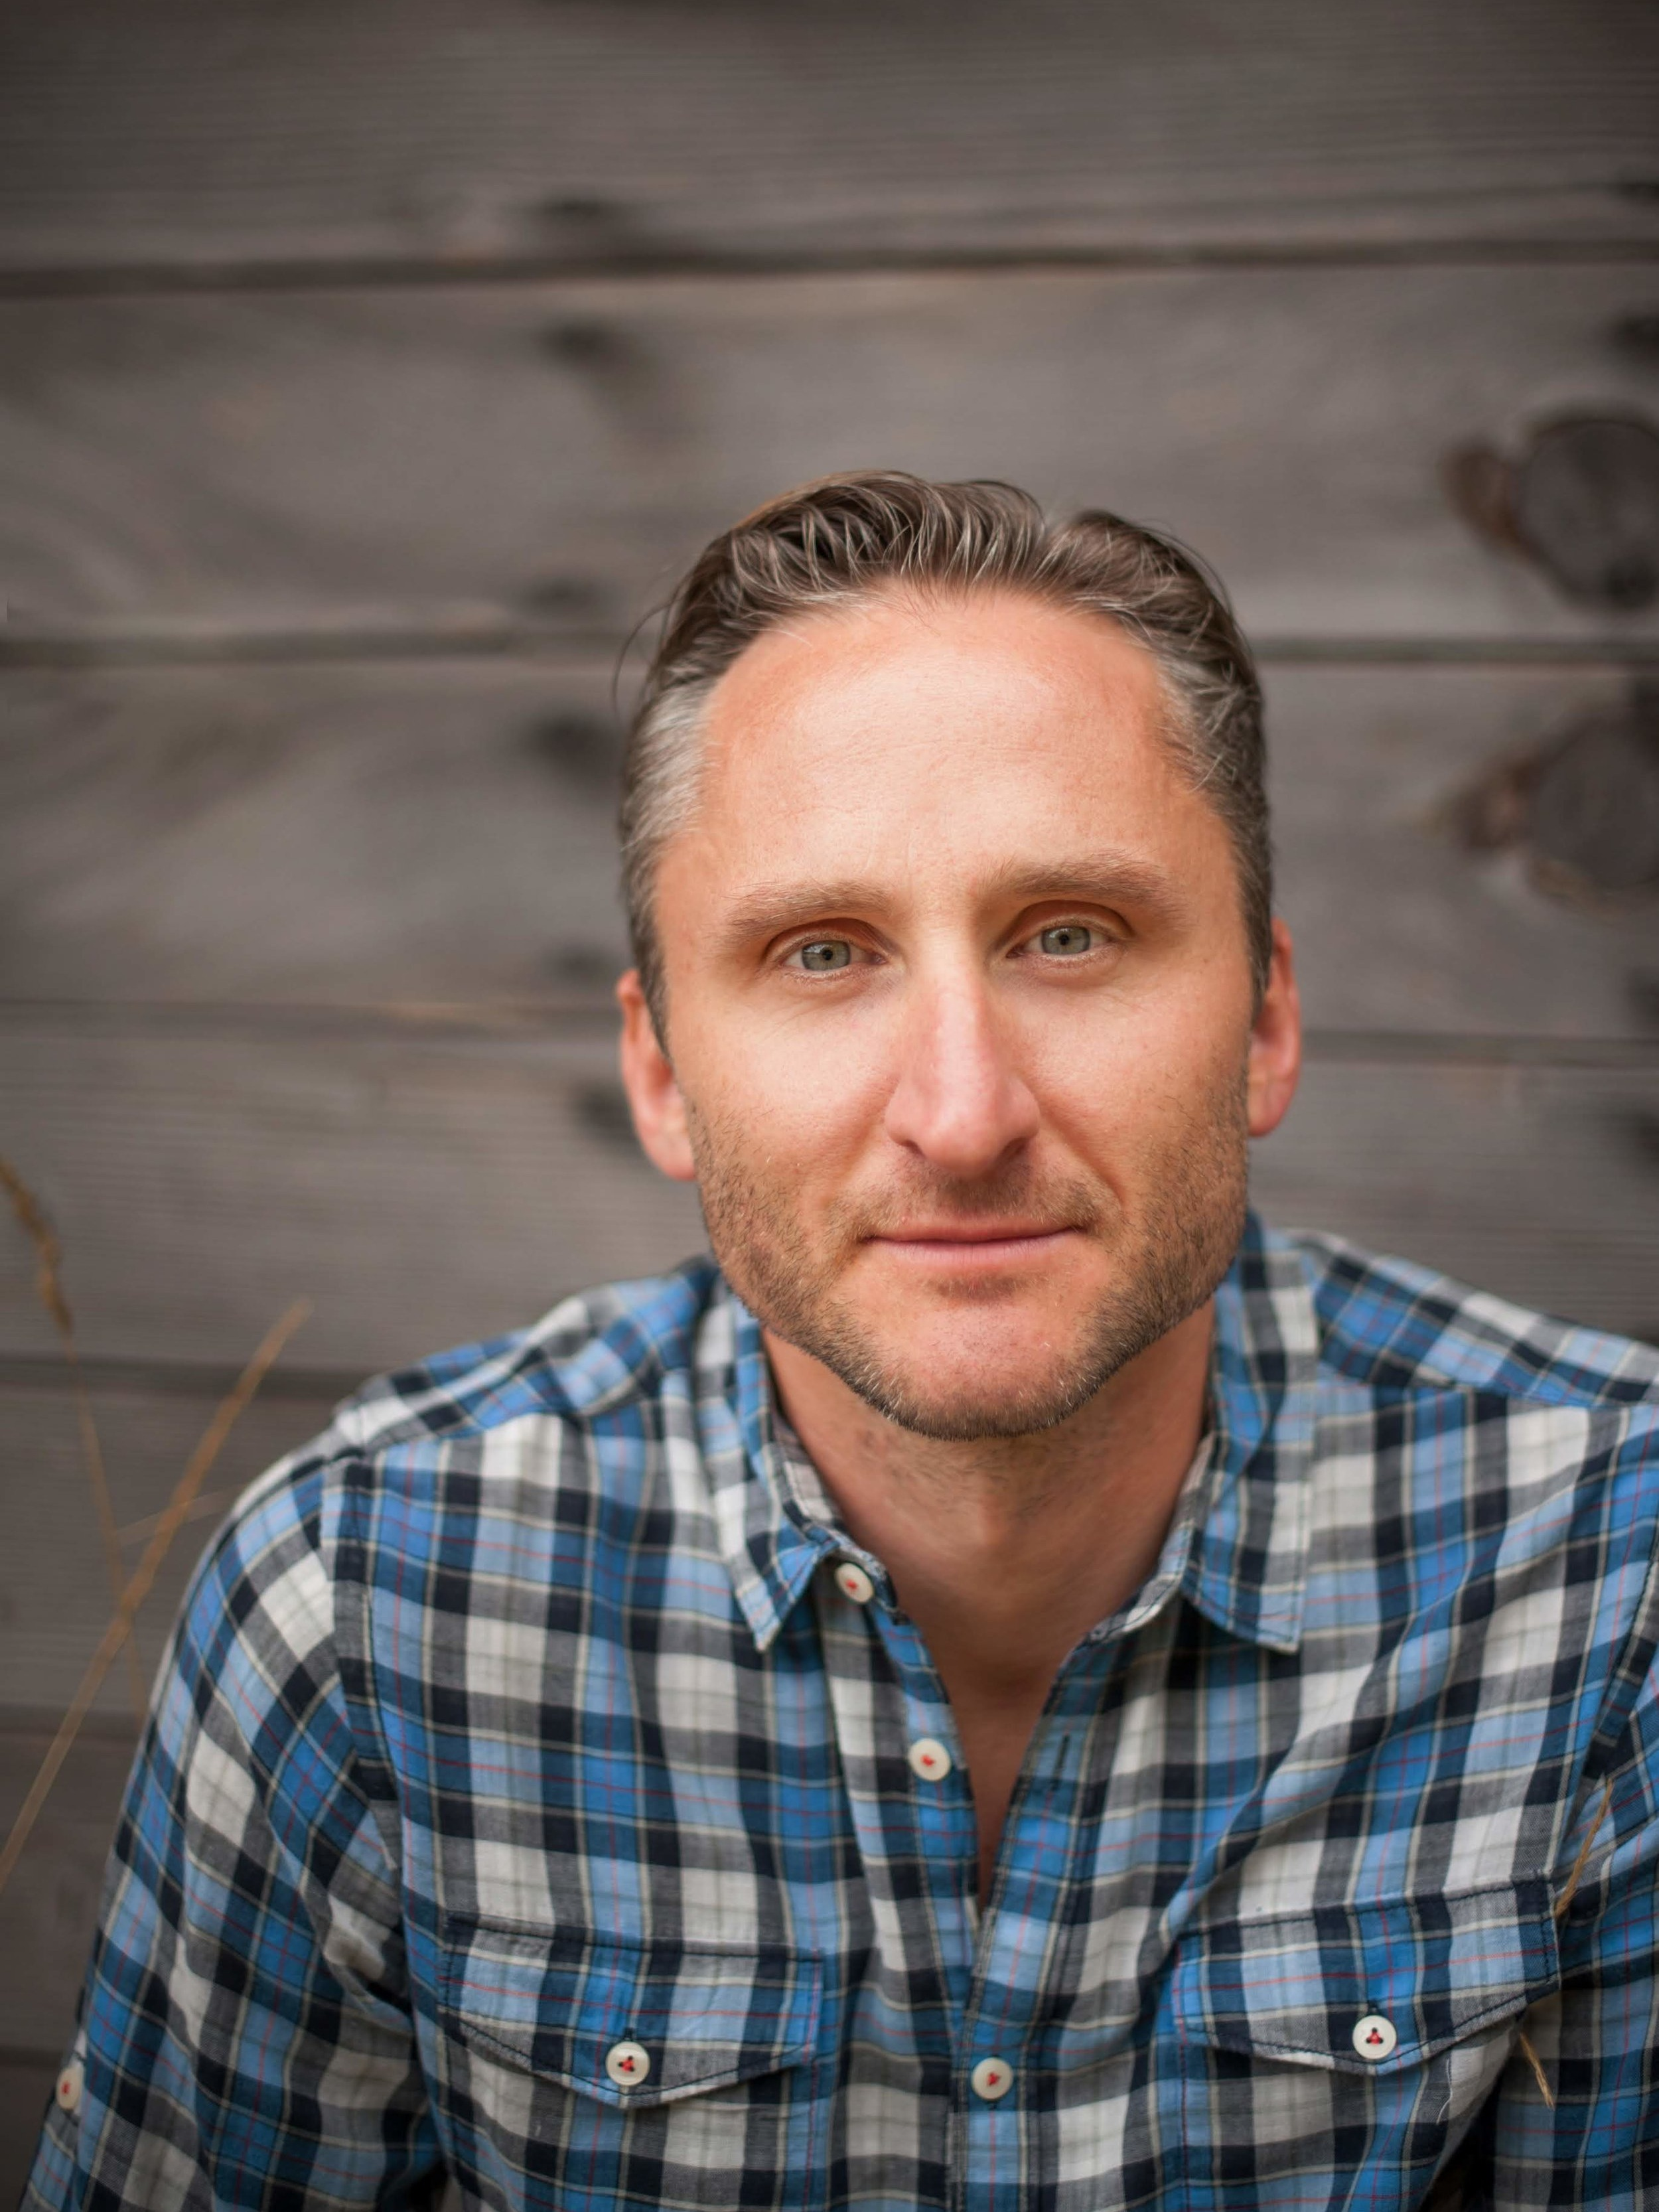 JESSE KEEFER - Owner and operator, Bodega RidgeJesse Keefer is the owner of Bodega Ridge located on B.C.'s Galiano Island. At the age of eight, Jesse first visited Galiano Island where he currently operates Bodega Ridge. His deluxe log-cabin accommodation and retreat destination Bodega Ridge has become a popular venue for companies such as Lululemon, Arc'teryx, Vega and Earls—as well as travellers from around the world. Jesse is always happy to share his love and intimate knowledge of the island. He is currently building out the Bodega Ridgesister property, Bodega Cove.